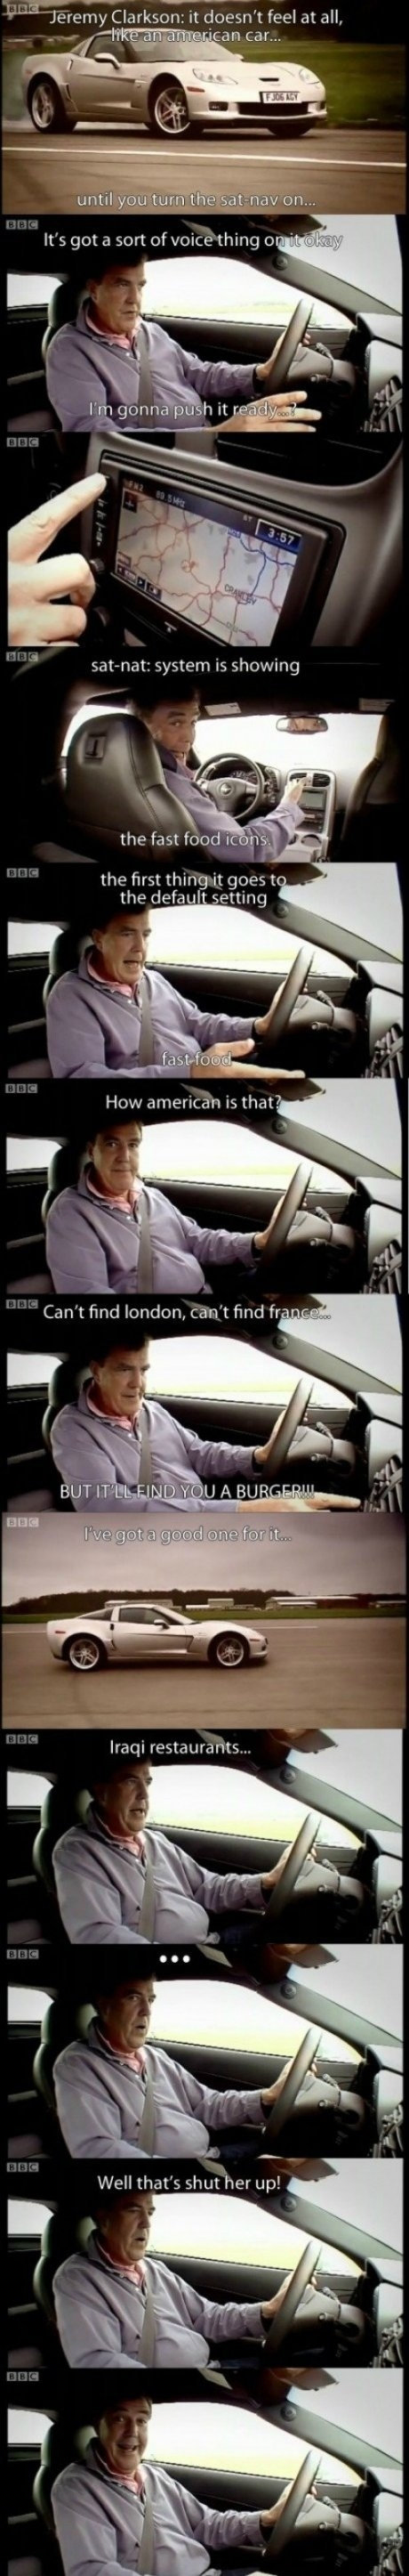 How American...  // funny pictures - funny photos - funny images - funny pics - funny quotes - #lol #humor #funnypictures